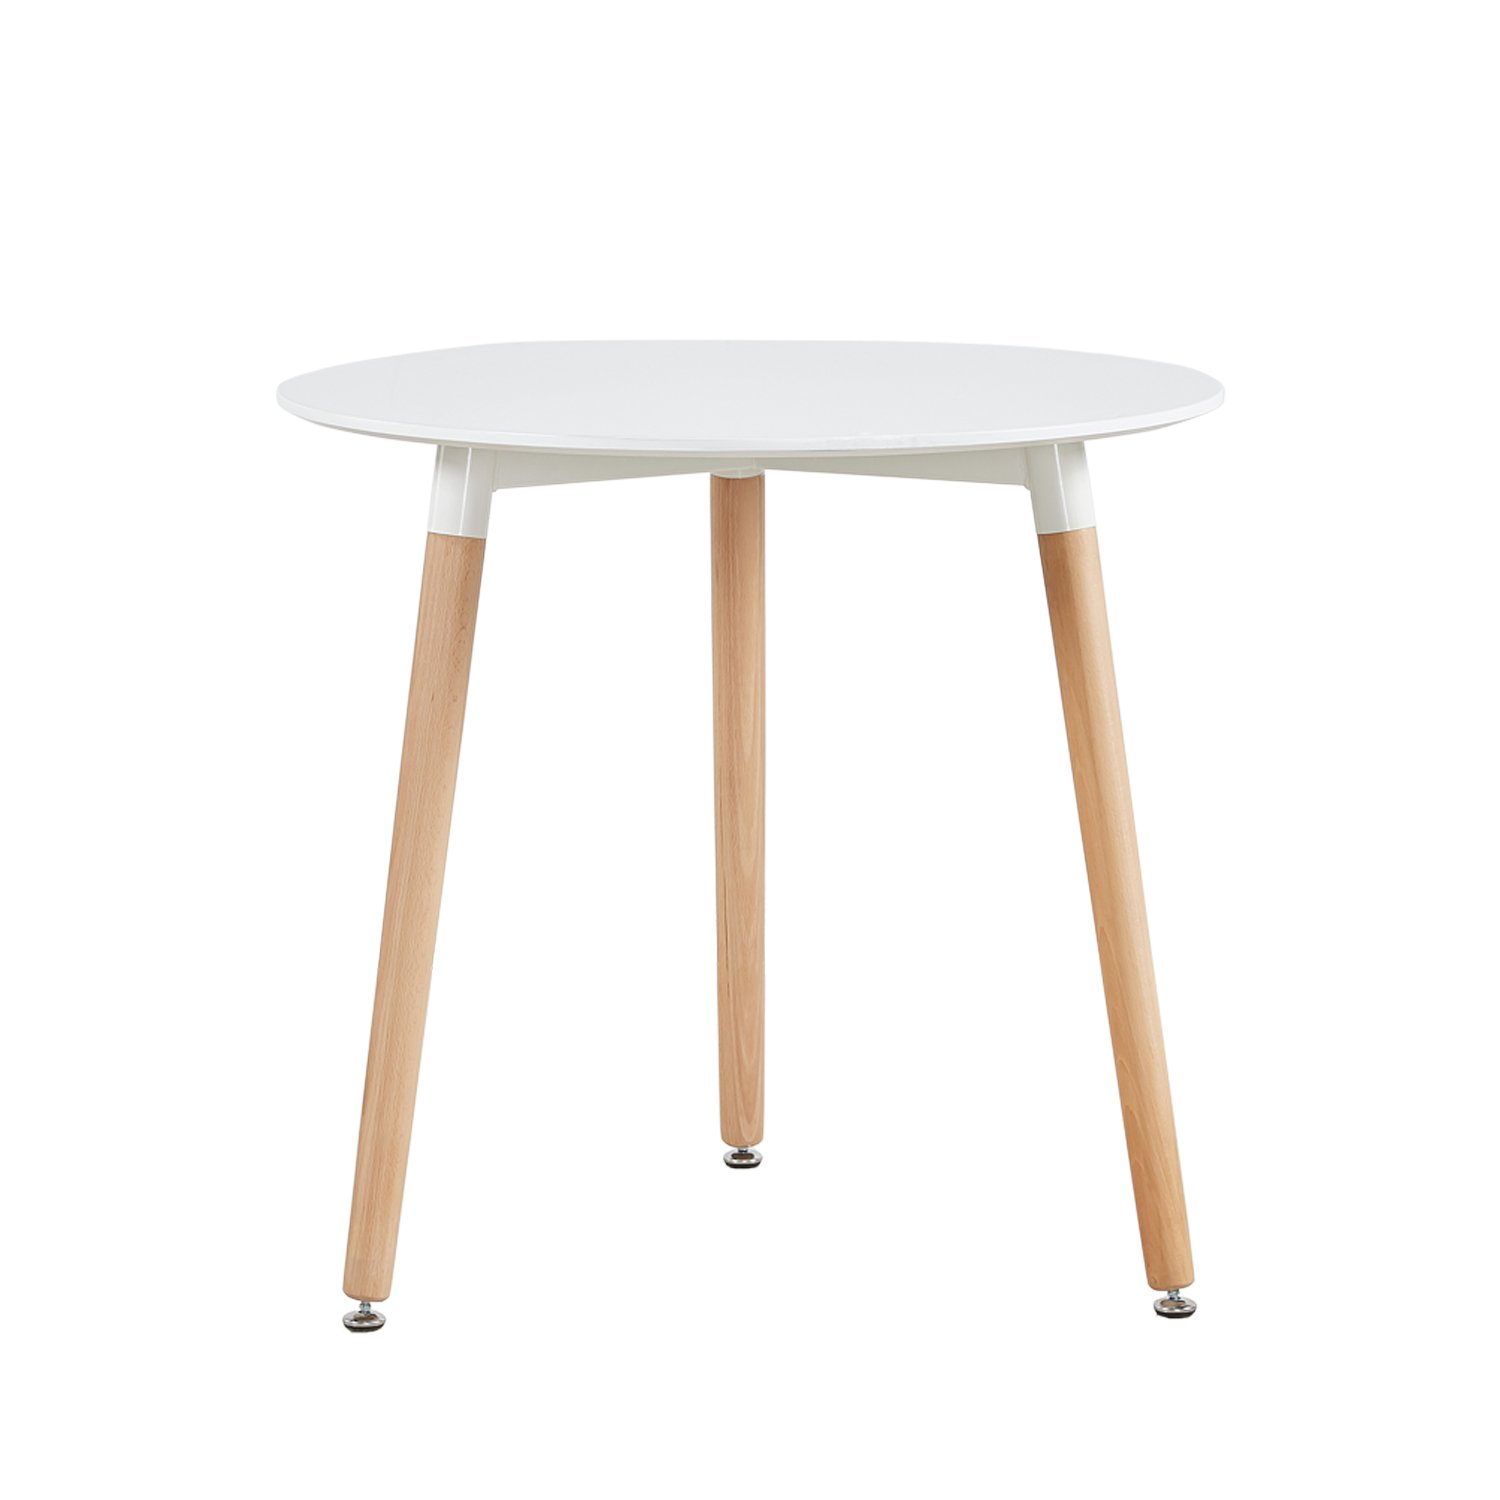 DORAFAIR Scandinavian style Round Dinning Table with Solid Wood Legs,Coffee Table White Modern Leisure Tea Table Office Table End Table,White